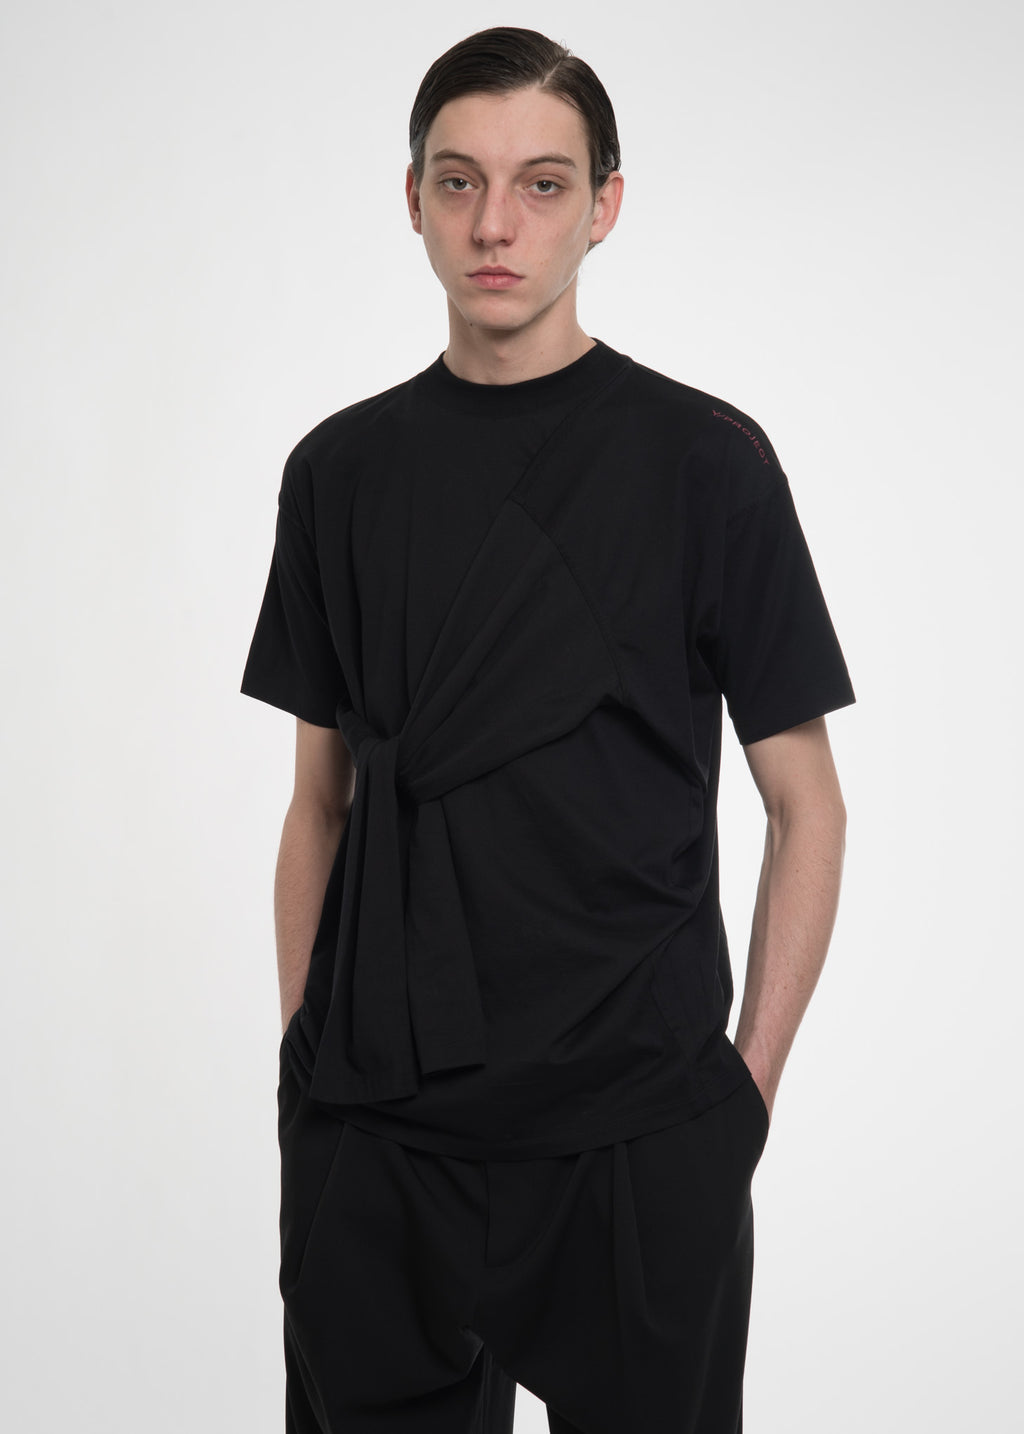 Black Four Sleeved T-Shirt